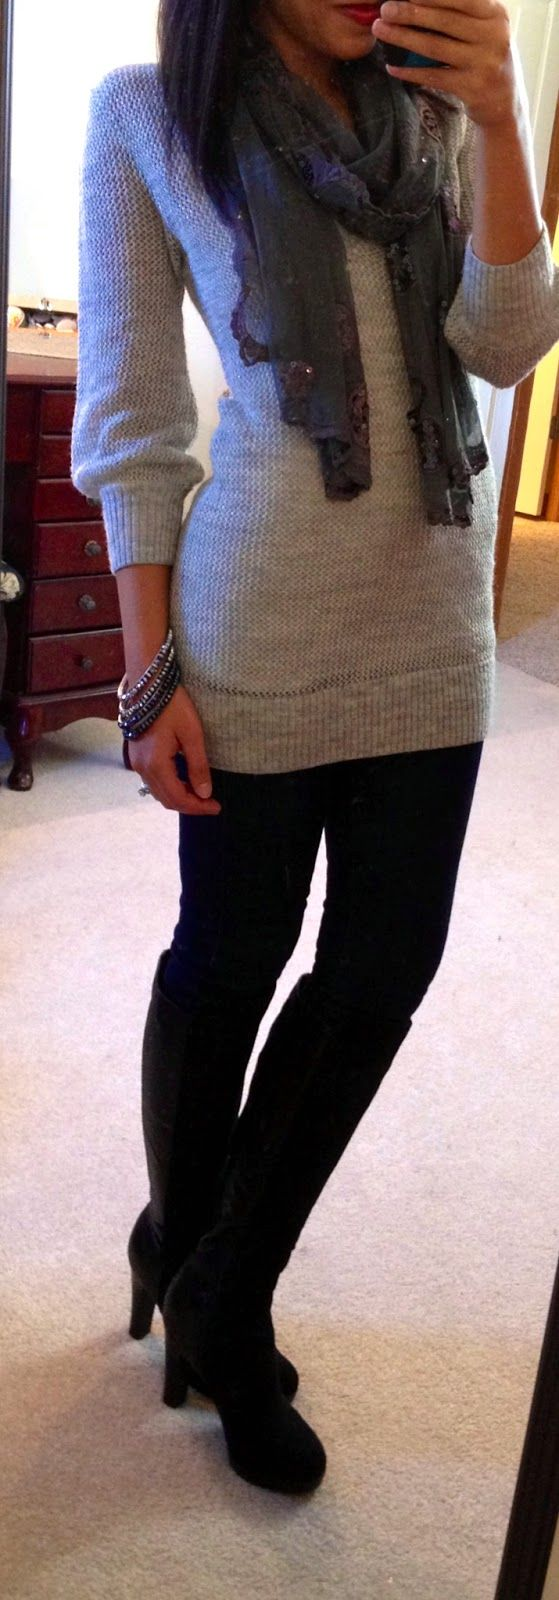 Grey tunic with black leggings and black boots.